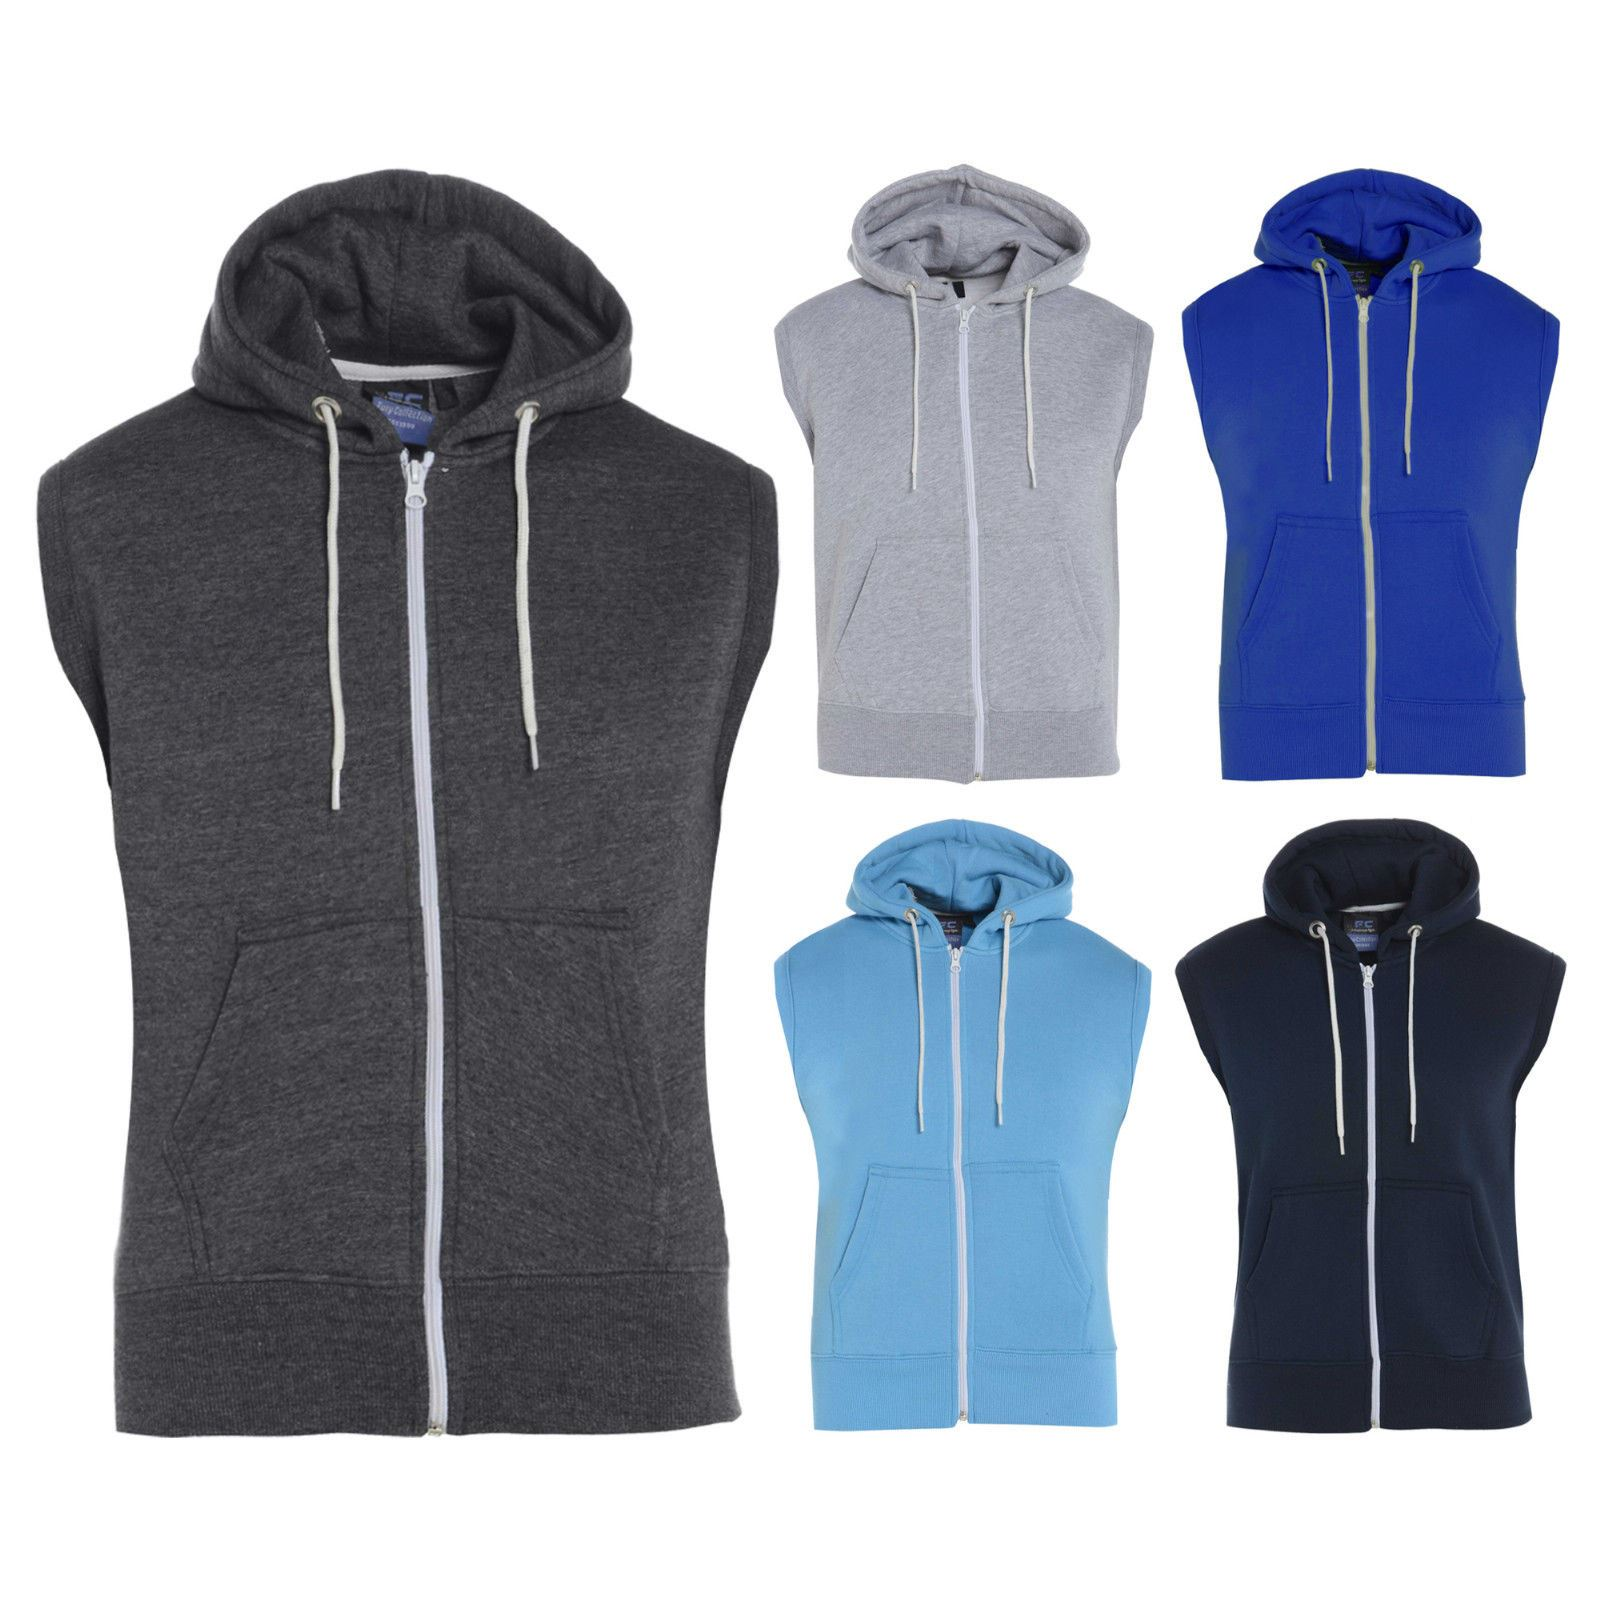 Sleeveless Hoodie For Boys | Fashion Ql